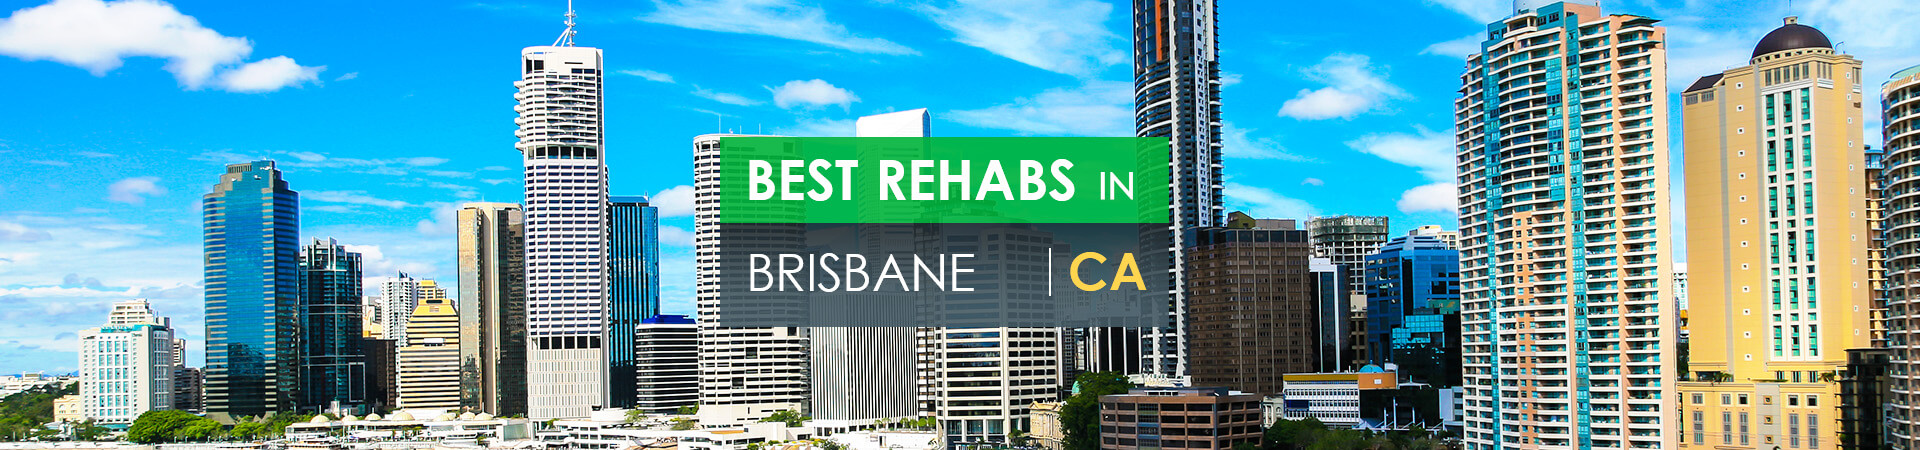 Best rehabs in Brisbane, CA